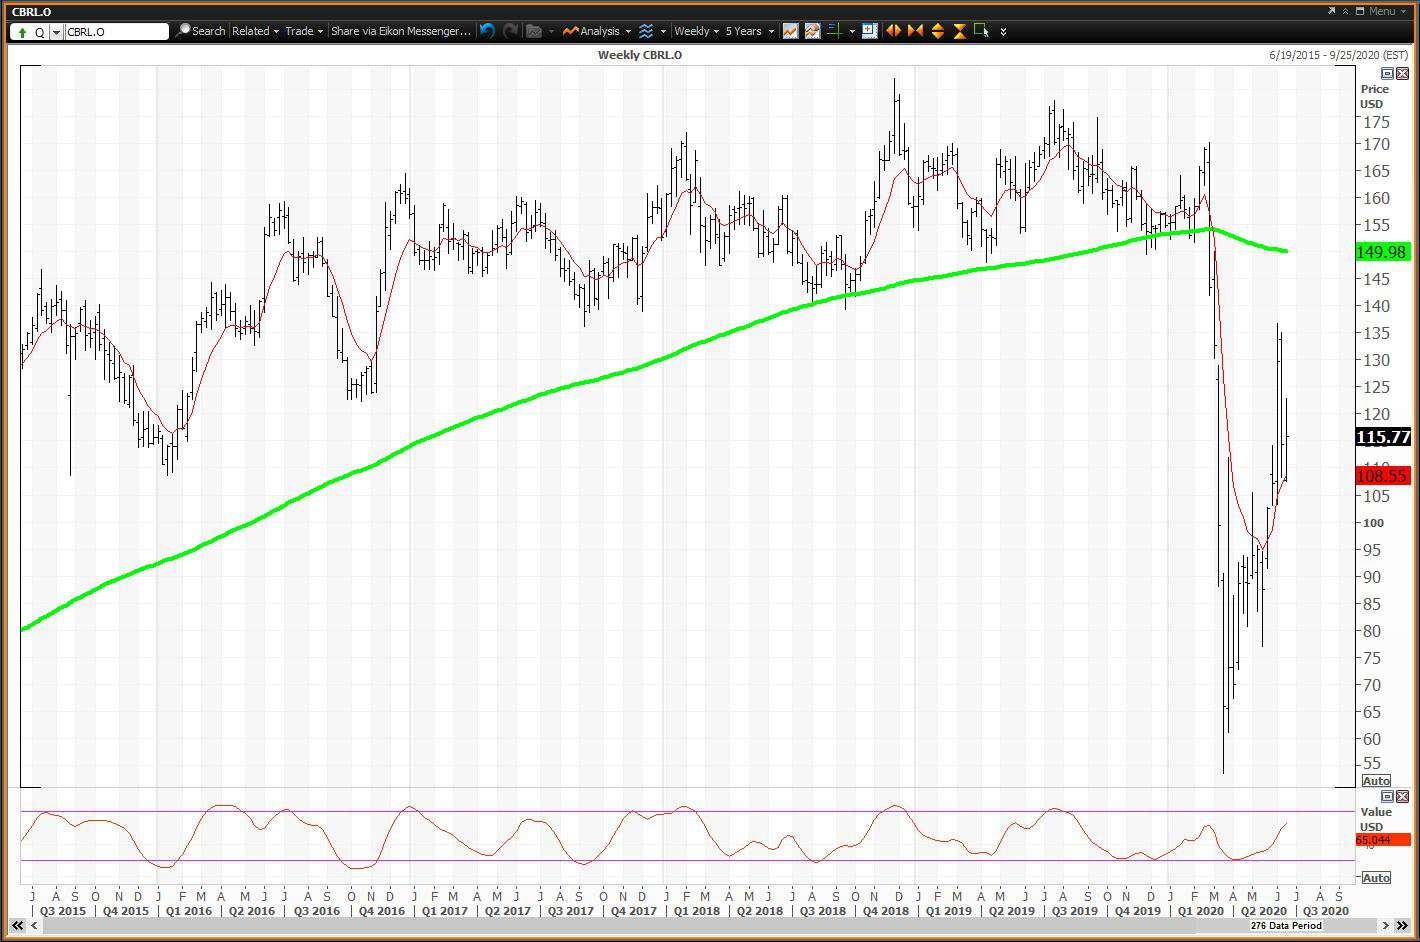 Weekly chart showing the share price performance of Cracker Barrel Old Country Store, Inc. (CBRL)